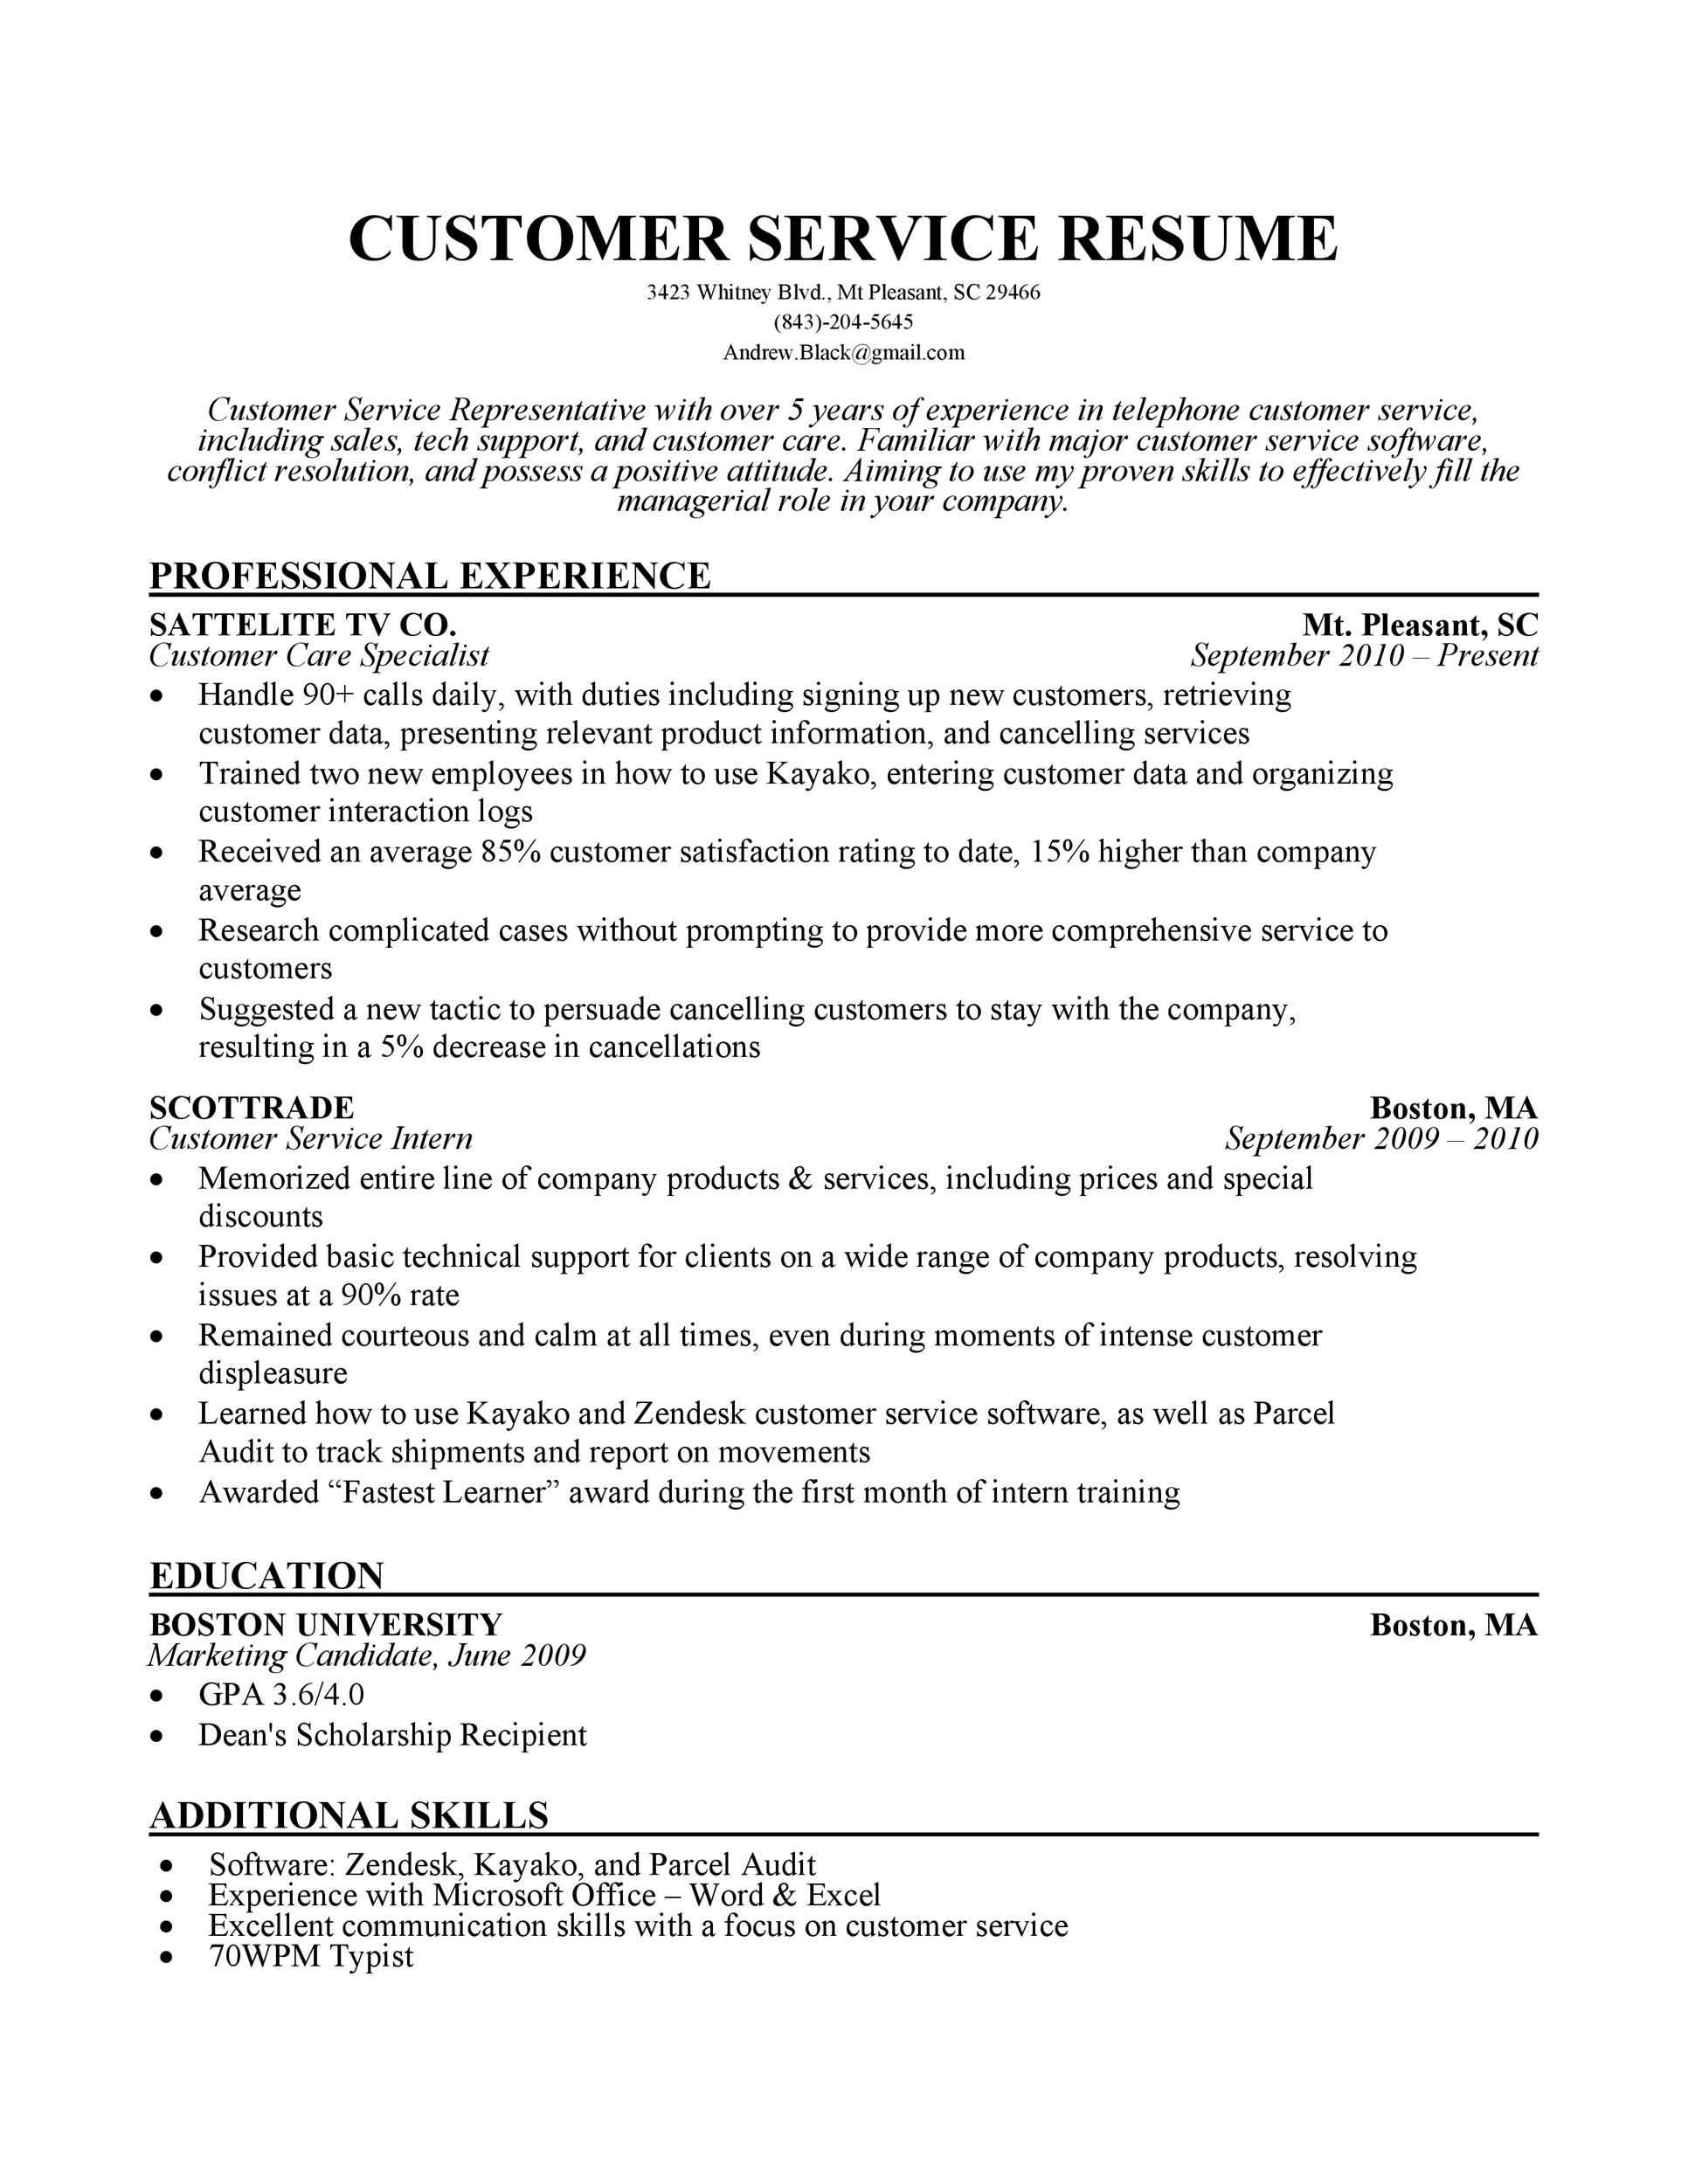 007 Impressive Customer Service Resume Template Idea  CvFull